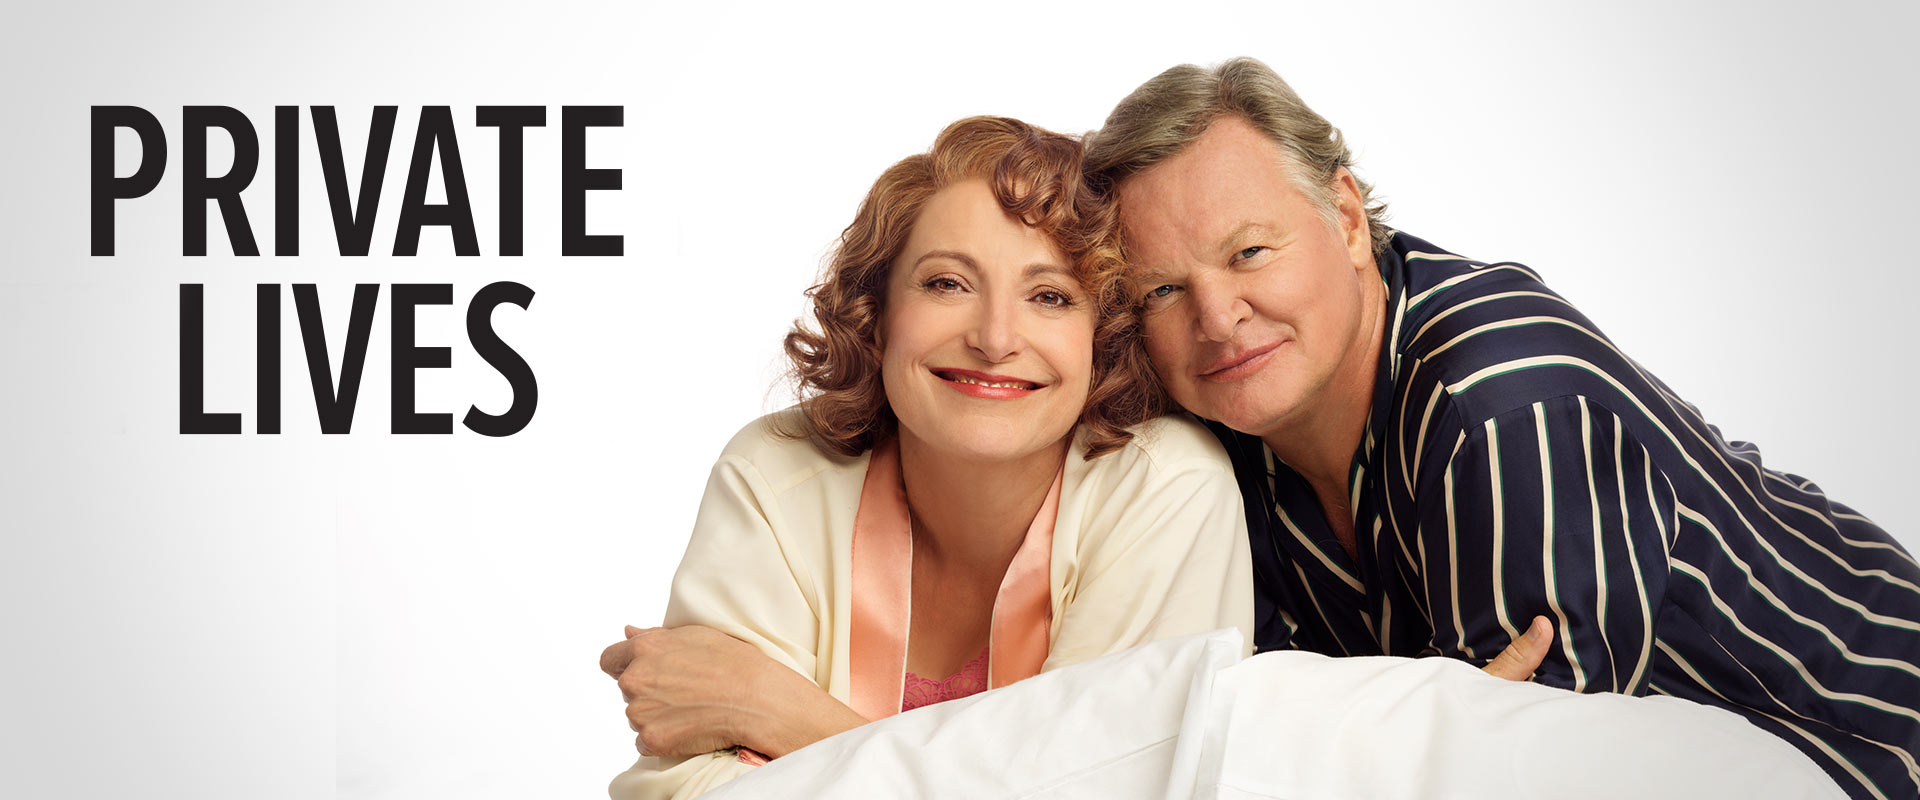 Publicity image from Private Lives